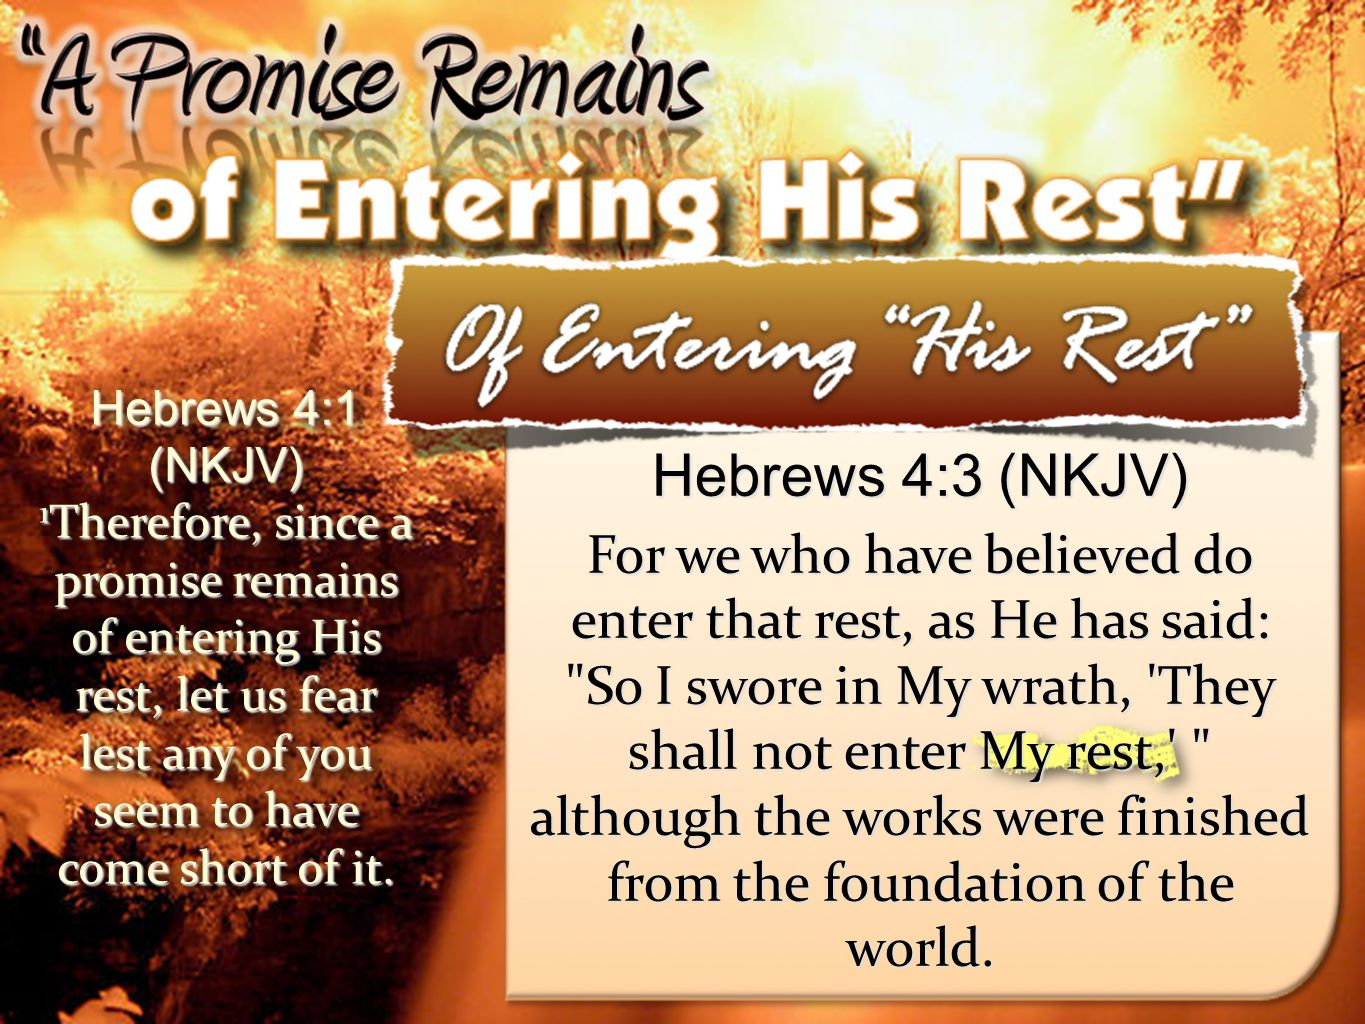 14 Hebrews 4:1 (NKJV) 1 Therefore, since a promise remains of entering His rest, let us fear lest any of you seem to have come short of it.